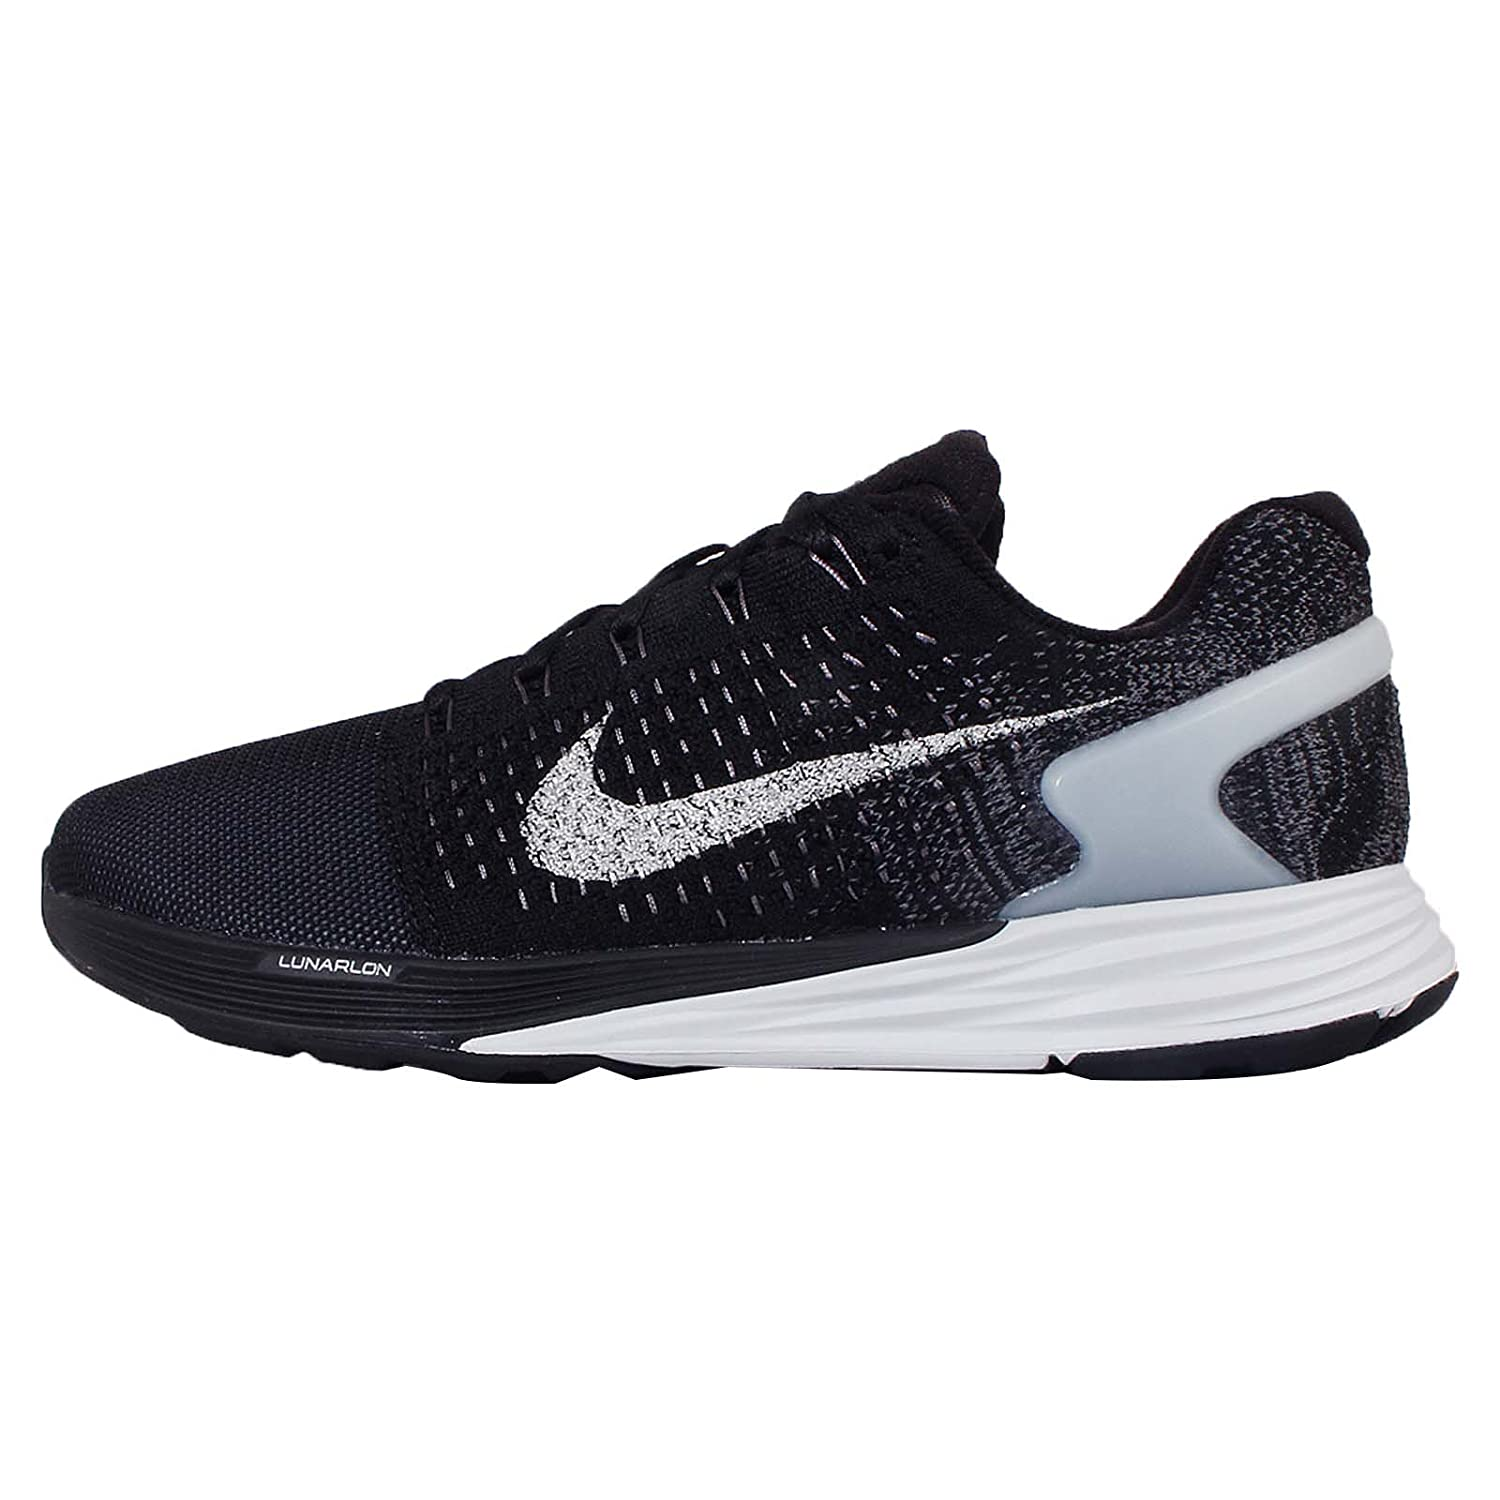 sports shoes 8513c 3148b Nike Women's Lunarglide 7 Running Shoe